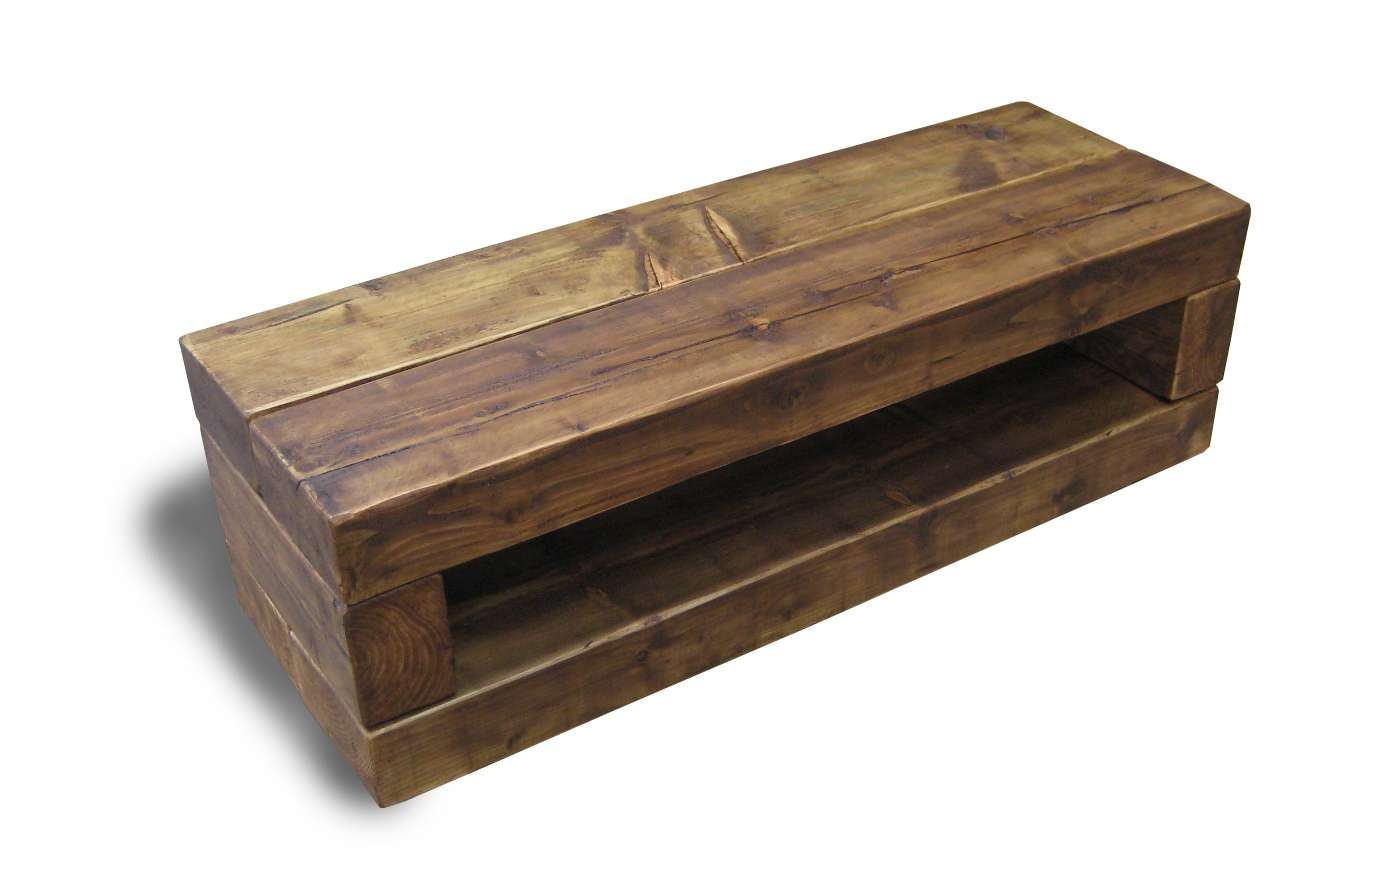 Chunky Stretch Tv Stand – The Cool Wood Company With Regard To Dark Wood Tv Stands (View 10 of 15)